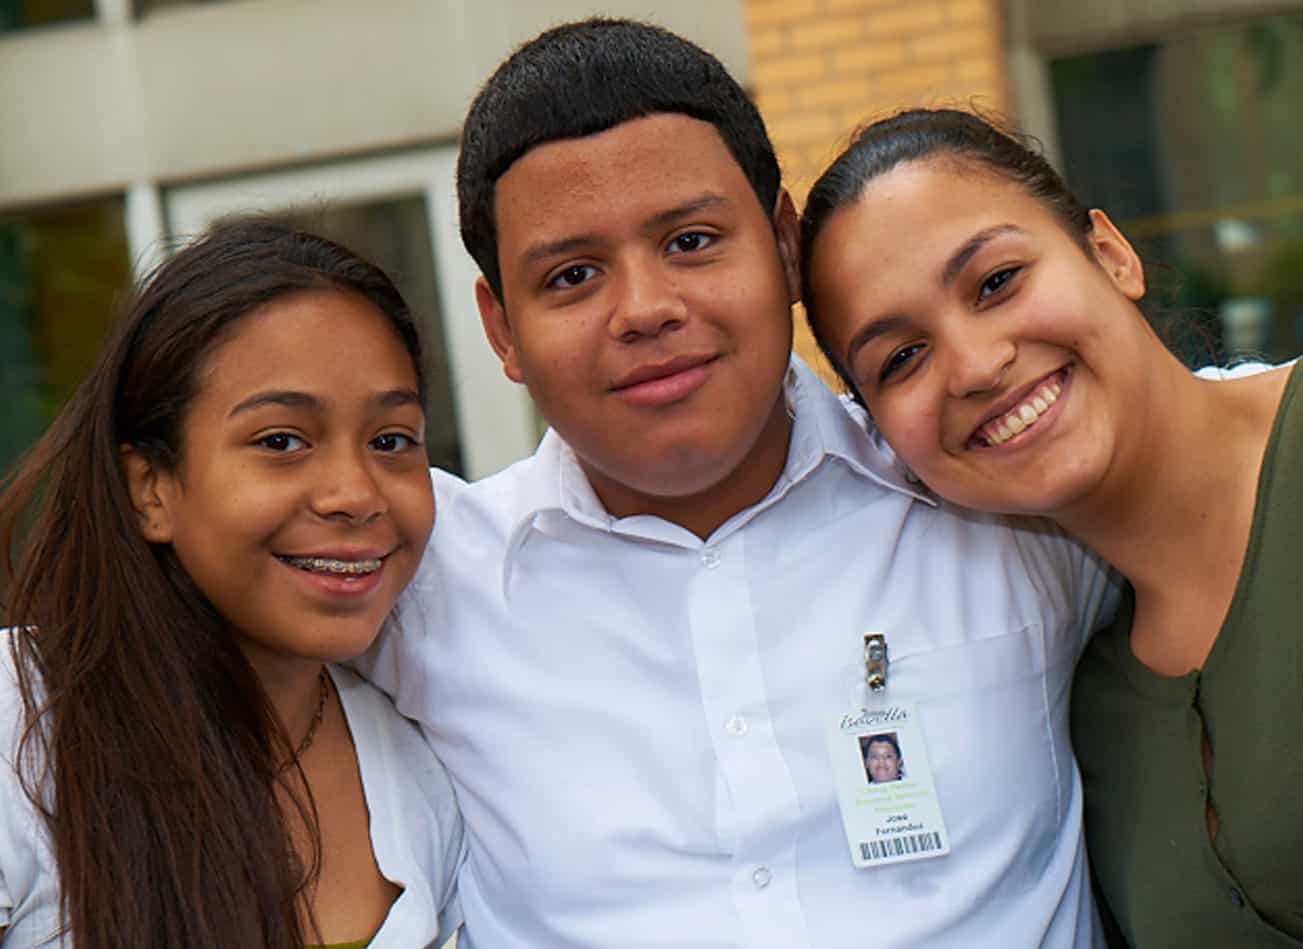 MJHS Volunteer Smiles with Two Younger Females